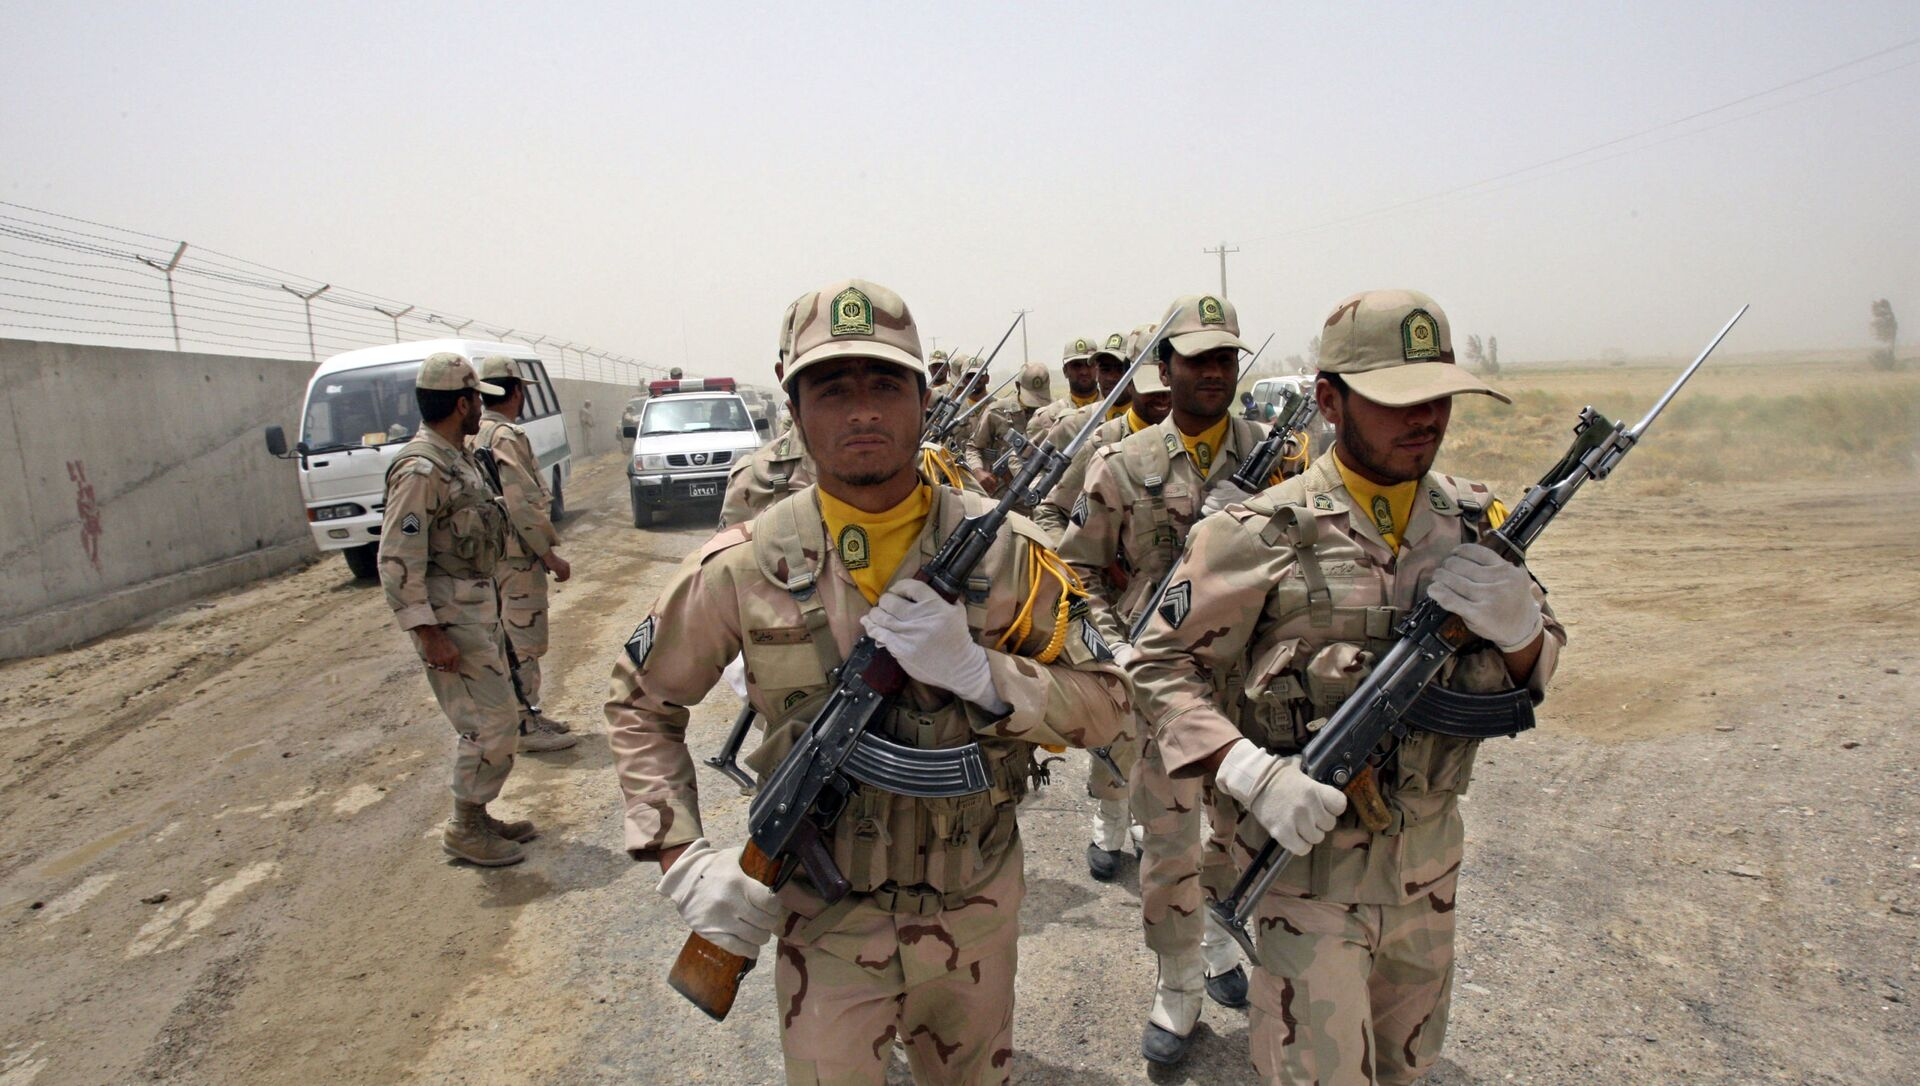 In this Tuesday, July 19, 2011 file photo, a group of Iranian border guards march at the eastern border of Iran shared with Pakistan and Afghanistan near Zabol, Sistan and Baluchestan Province, Iran.  - Sputnik International, 1920, 26.07.2021